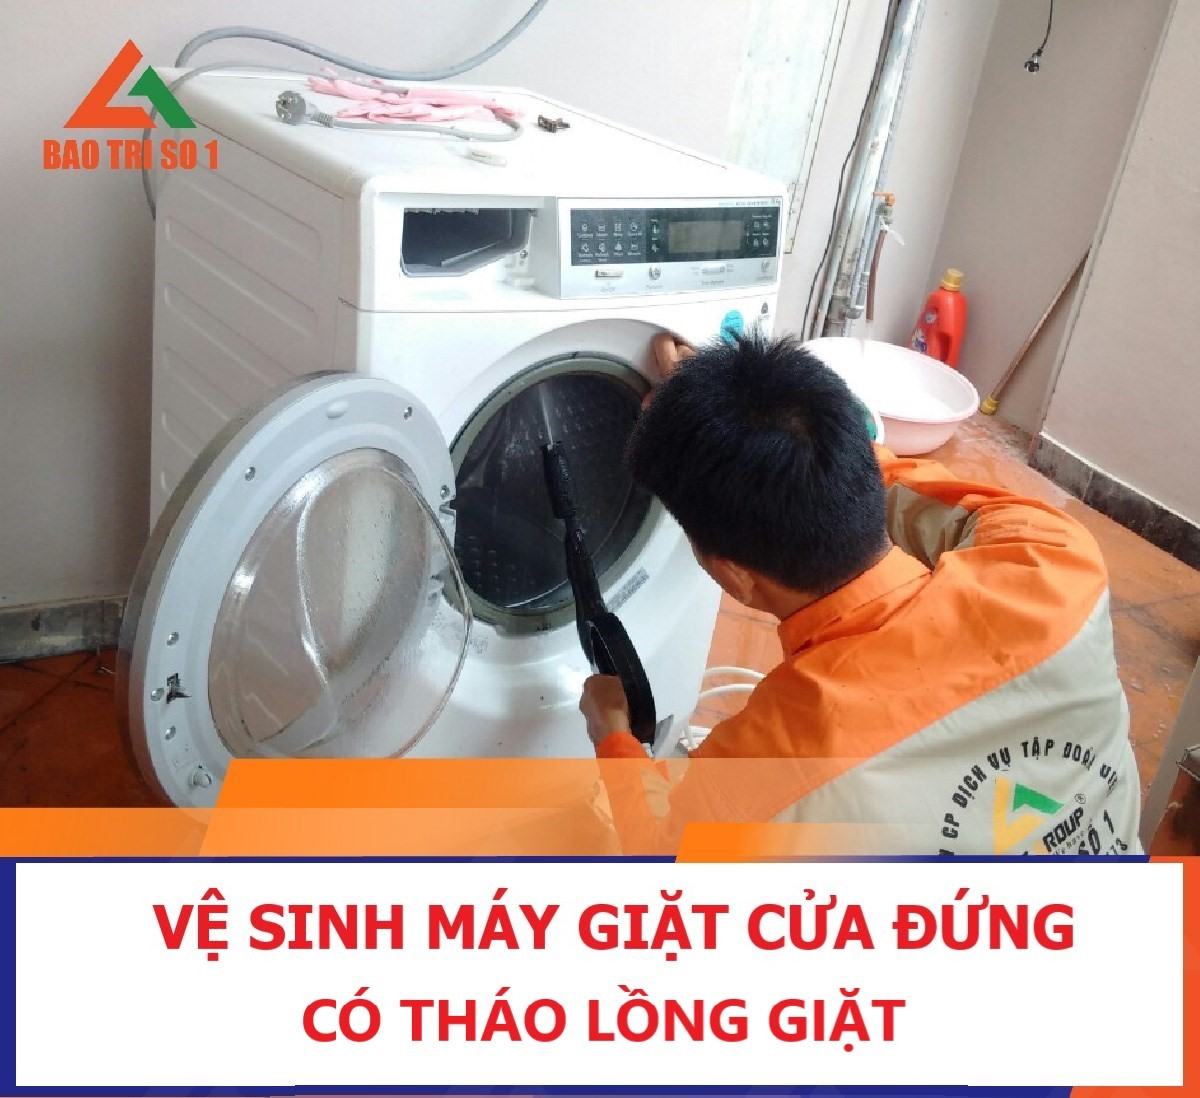 Ve Sinh May Giat Cua Dung